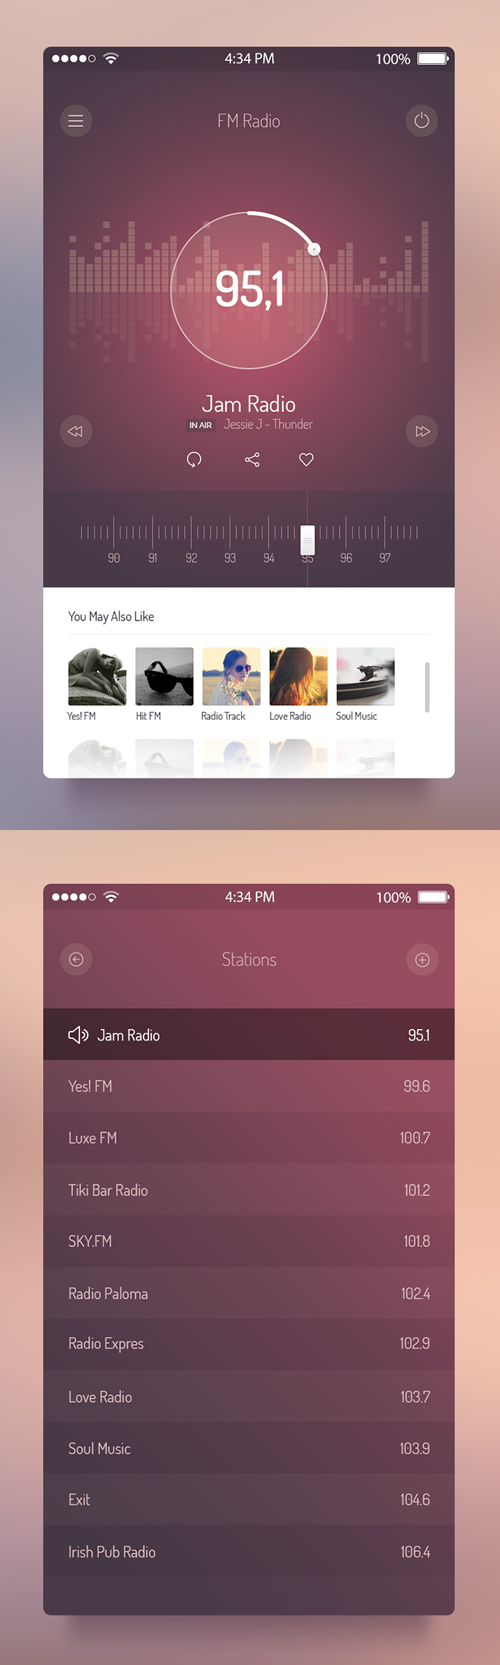 Amazing Mobile App UI Designs with Ultimate User Experience - 14